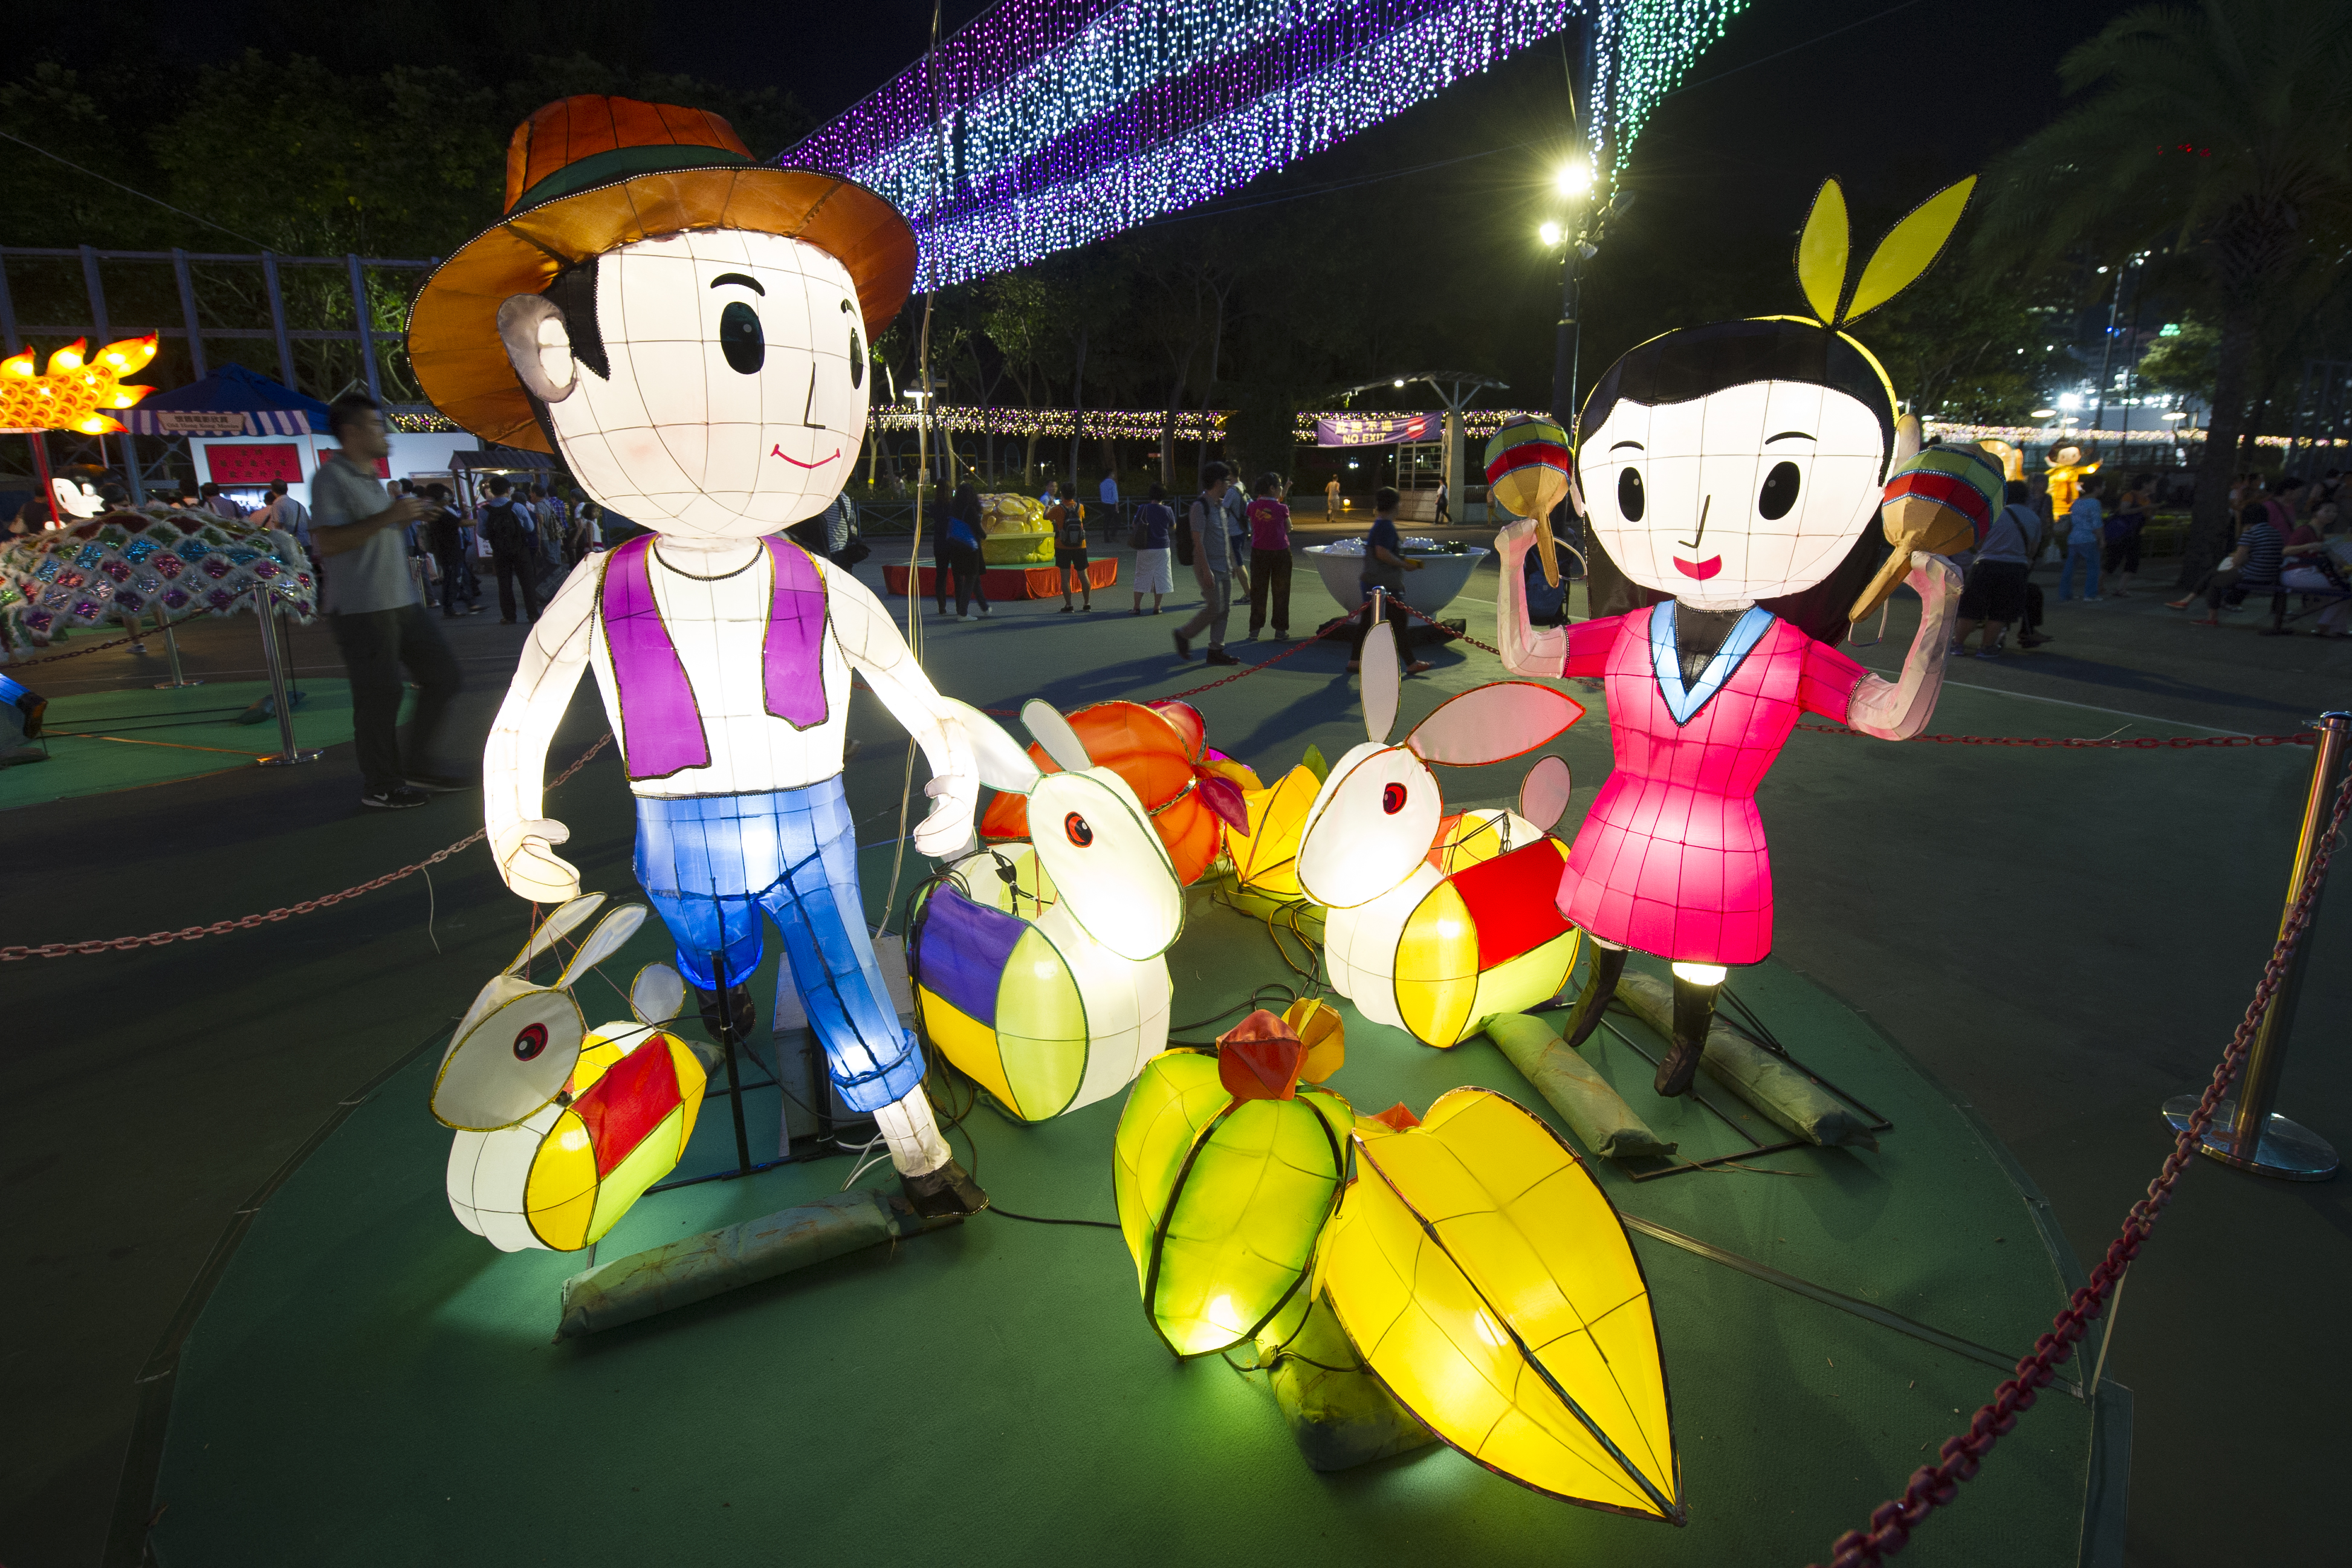 Light decorations are displayed as mid-autumn celebrations take place at dusk on Sept. 24, 2015, in Victoria Park in Hong Kong